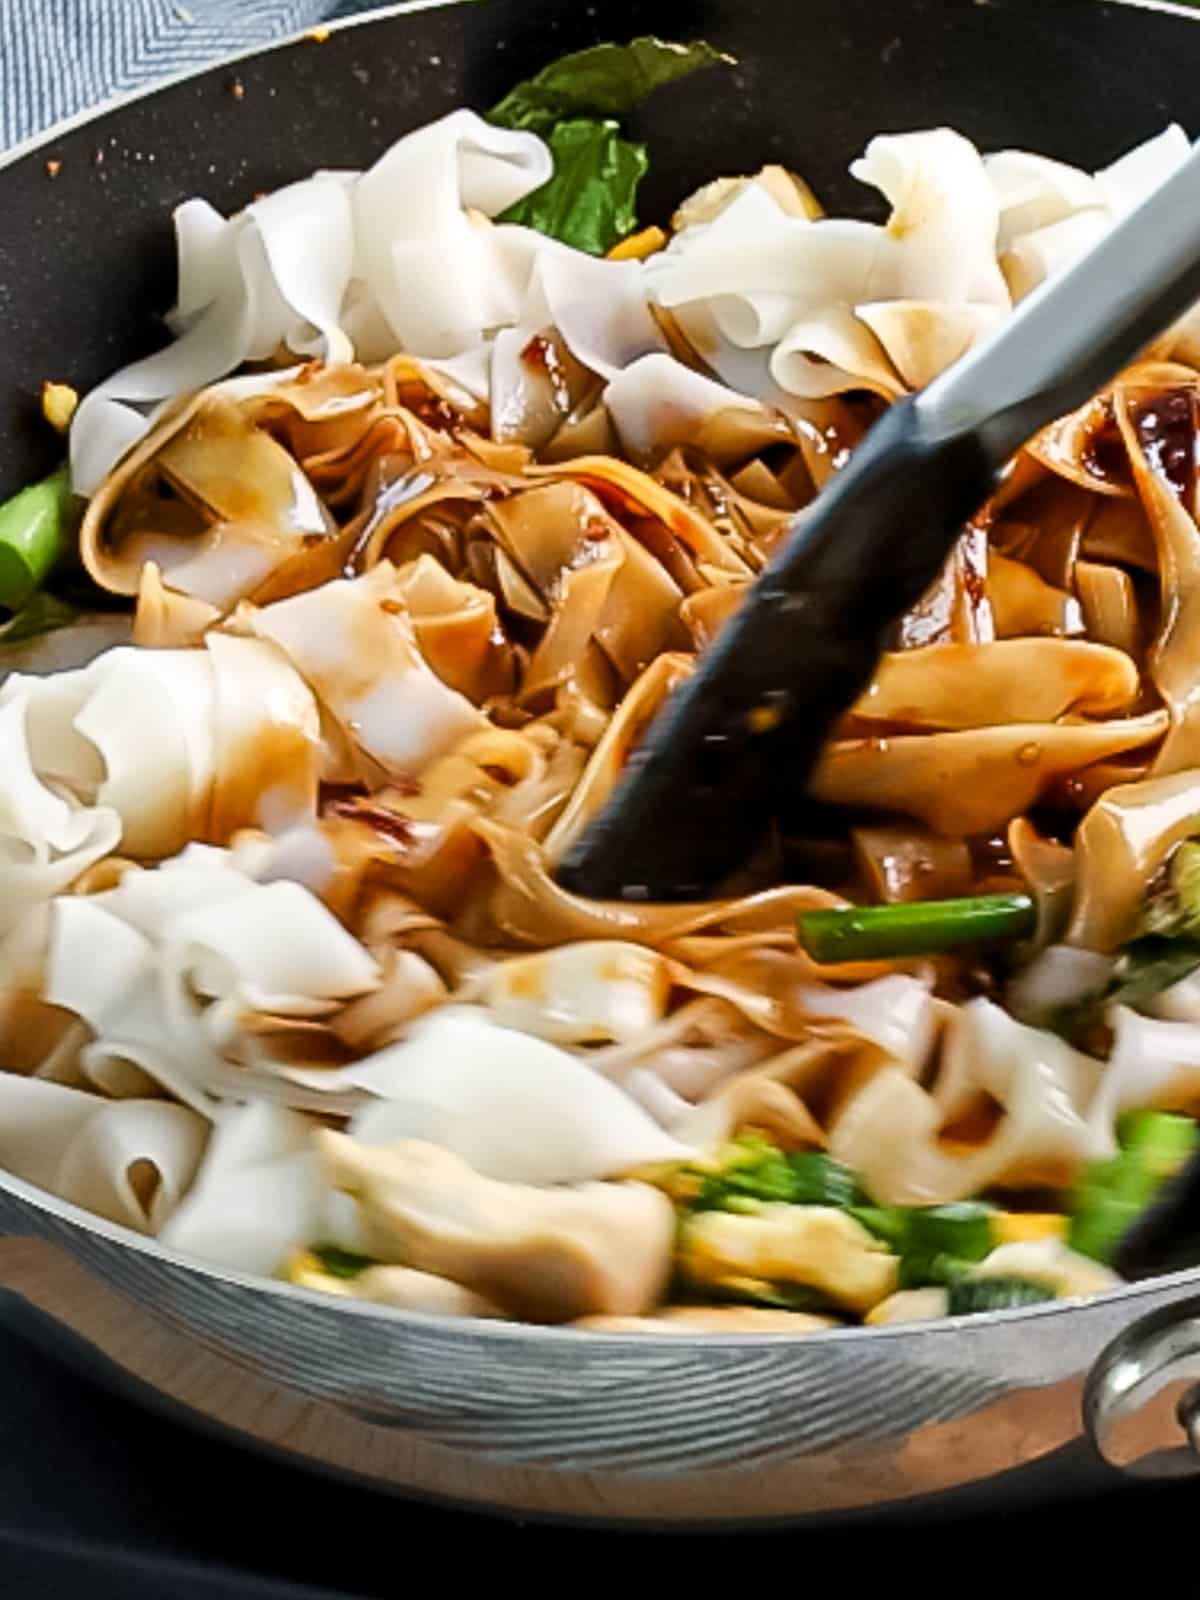 Wide rice noodles and pad see ew sauce being stir fried together with Chinese broccoli.